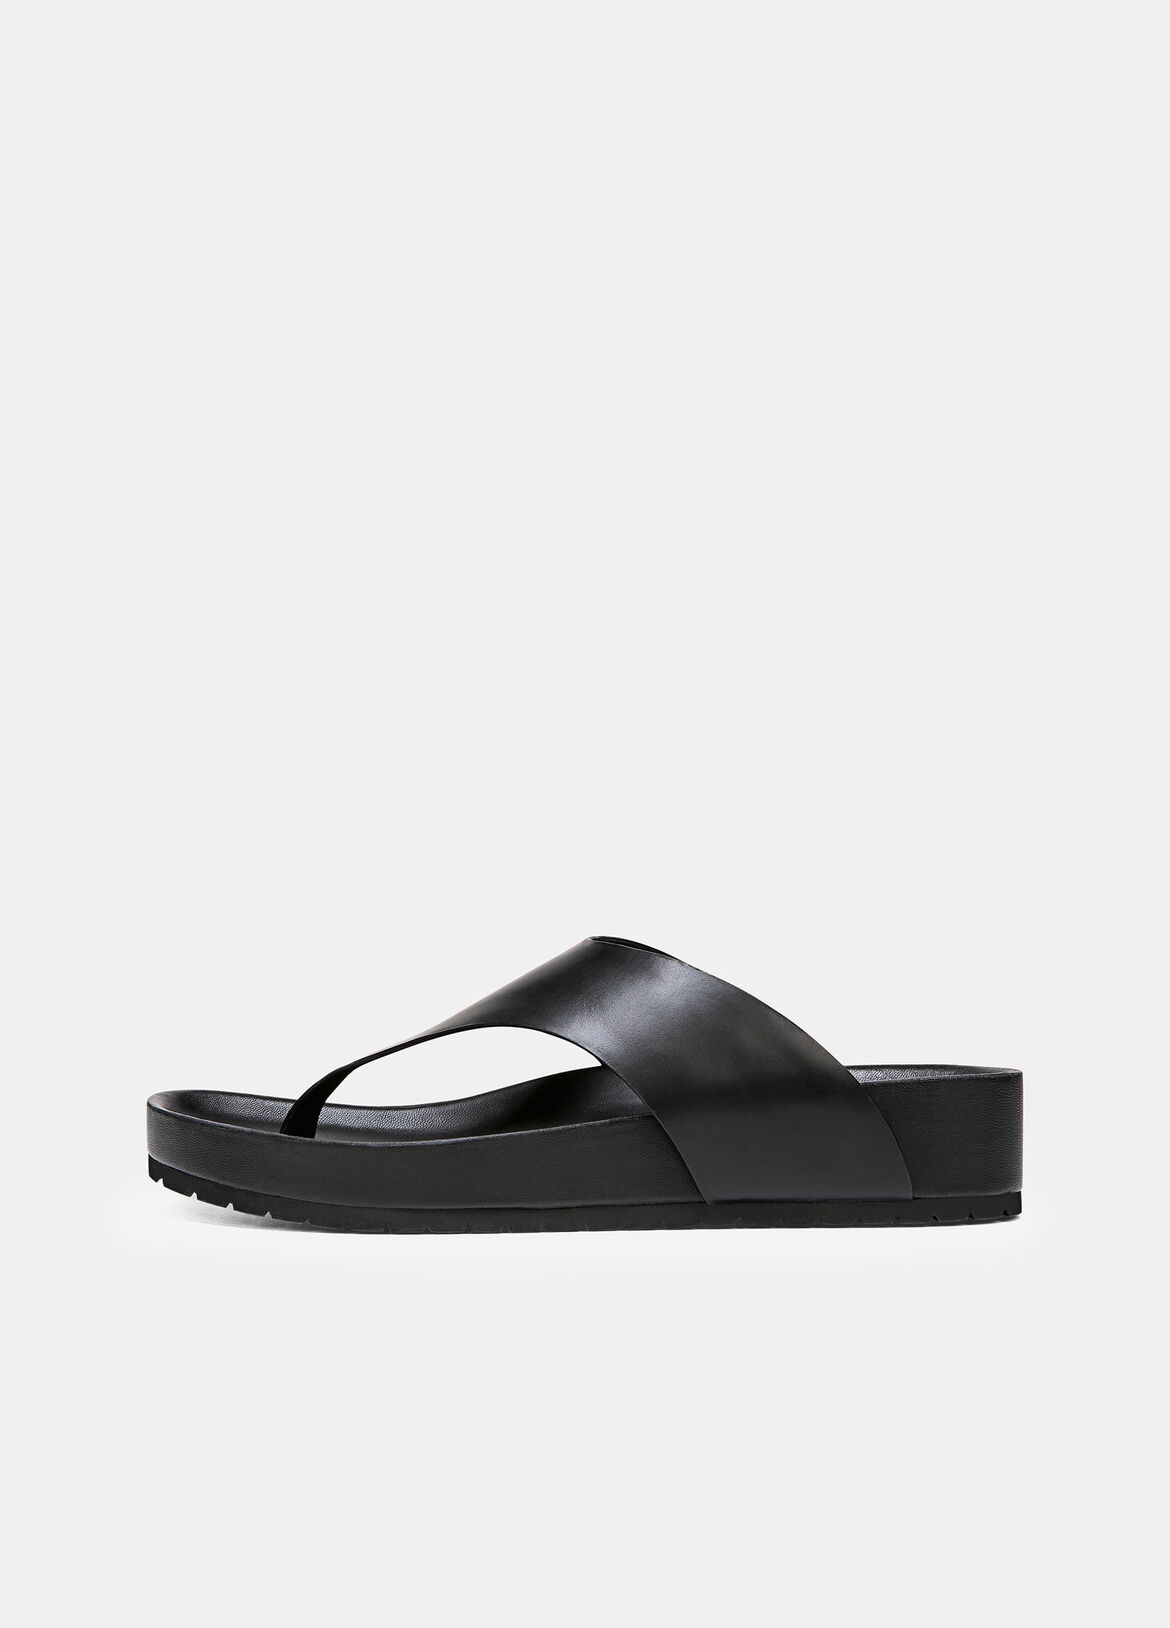 The Padma are elevated sandals done in smooth leather. They're finished with comfortable molded footbeds.